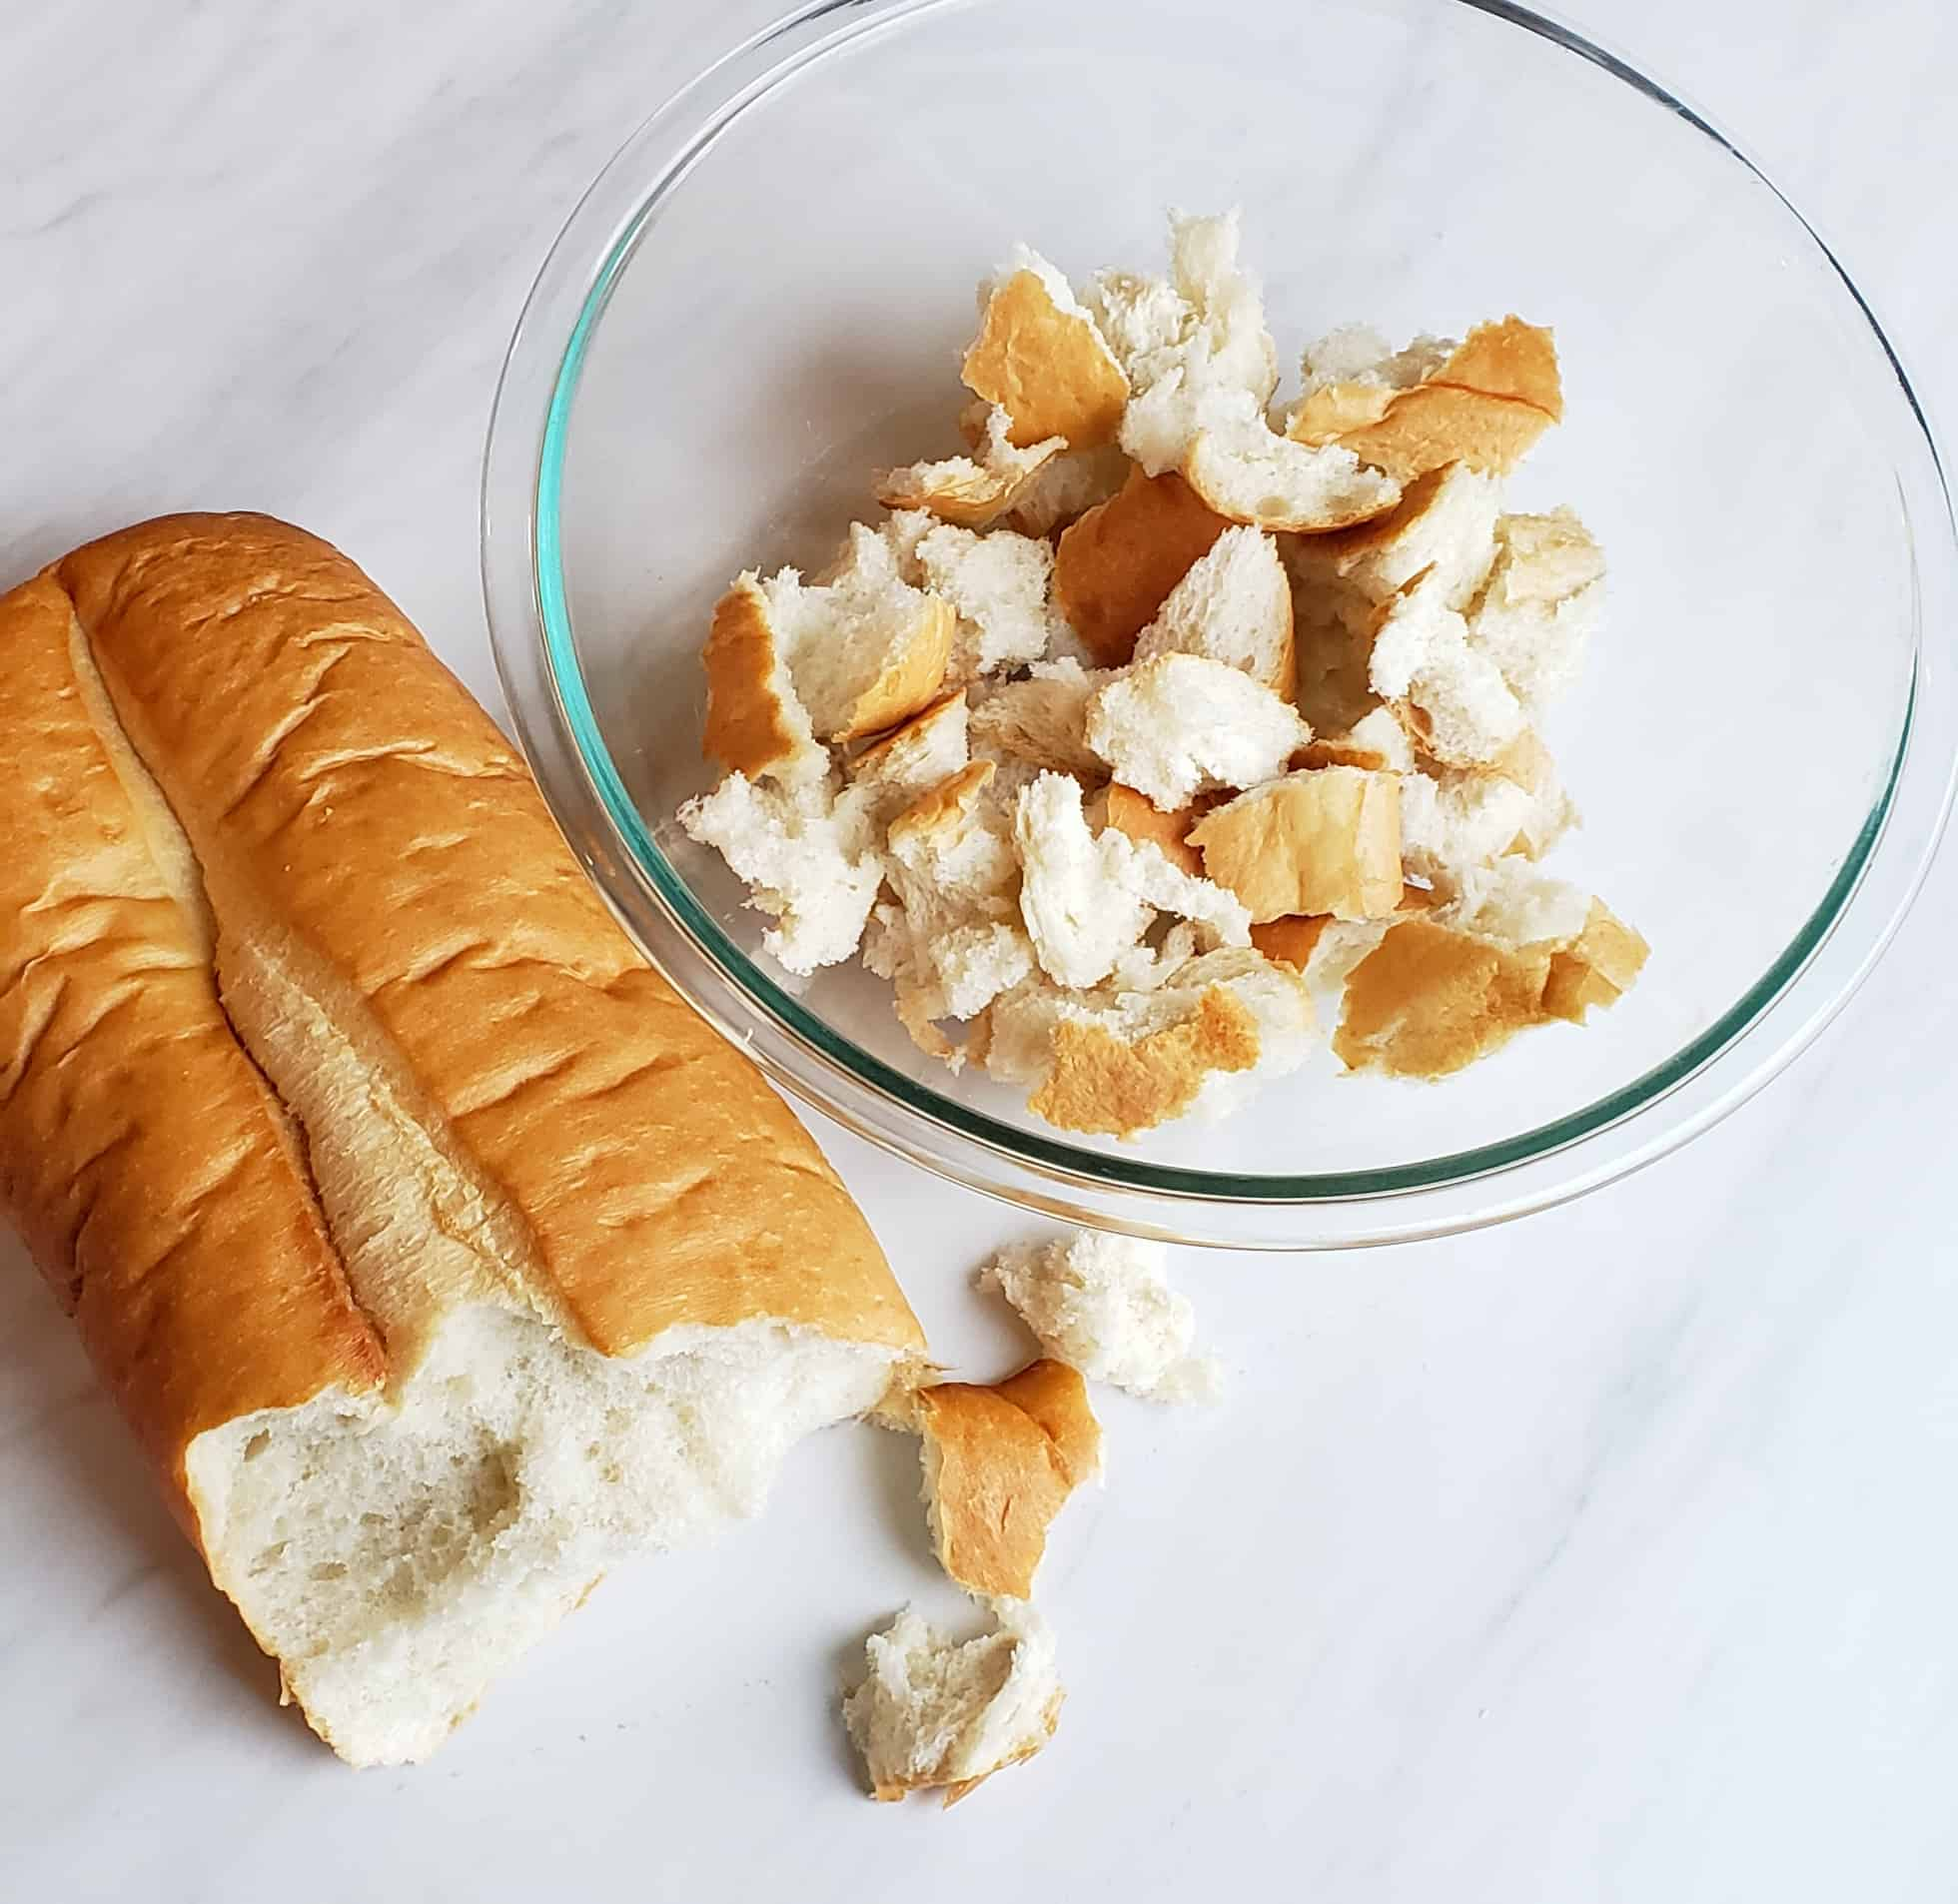 loaf of french bread being torn in a clear glass bowl